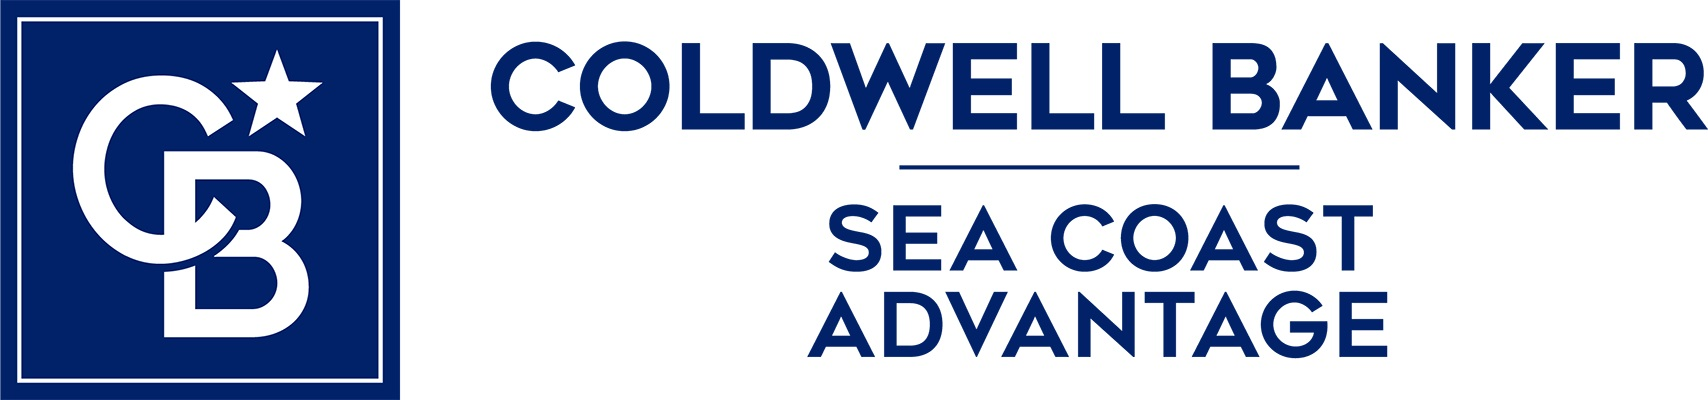 Anne Freeman - Coldwell Banker Sea Coast Advantage Realty Logo